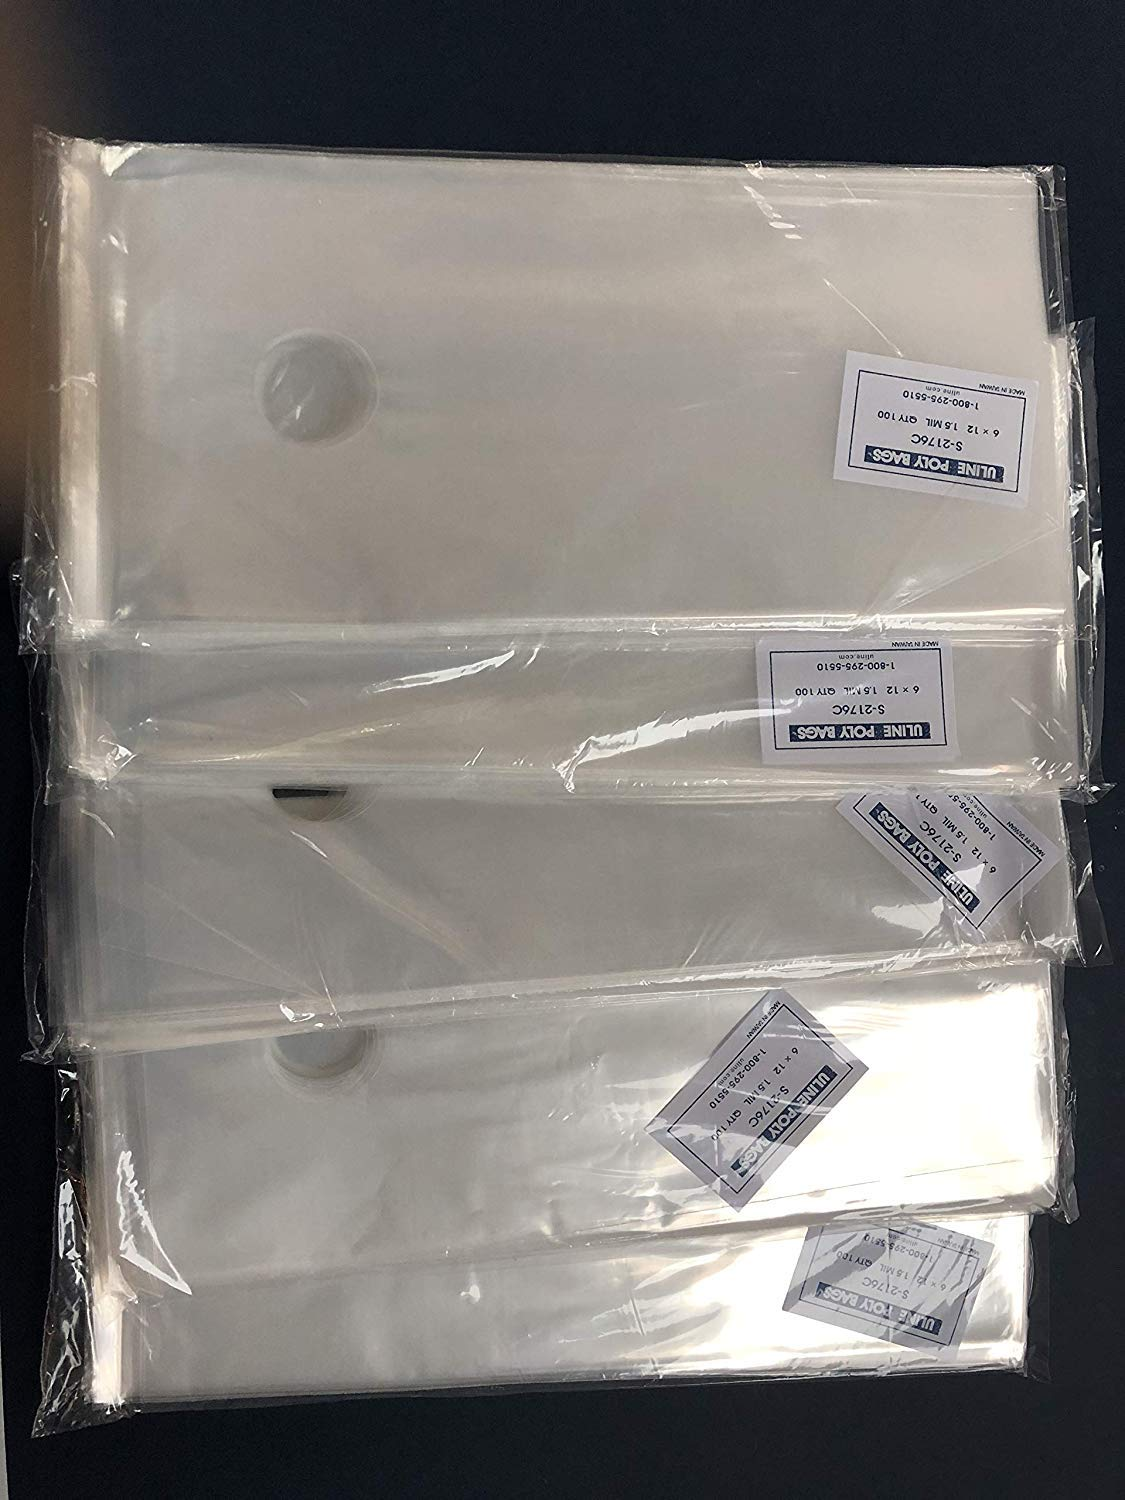 200 CLEAR 6 x 6 POLY BAGS PLASTIC LAY FLAT OPEN TOP PACKING ULINE BEST 1 MIL